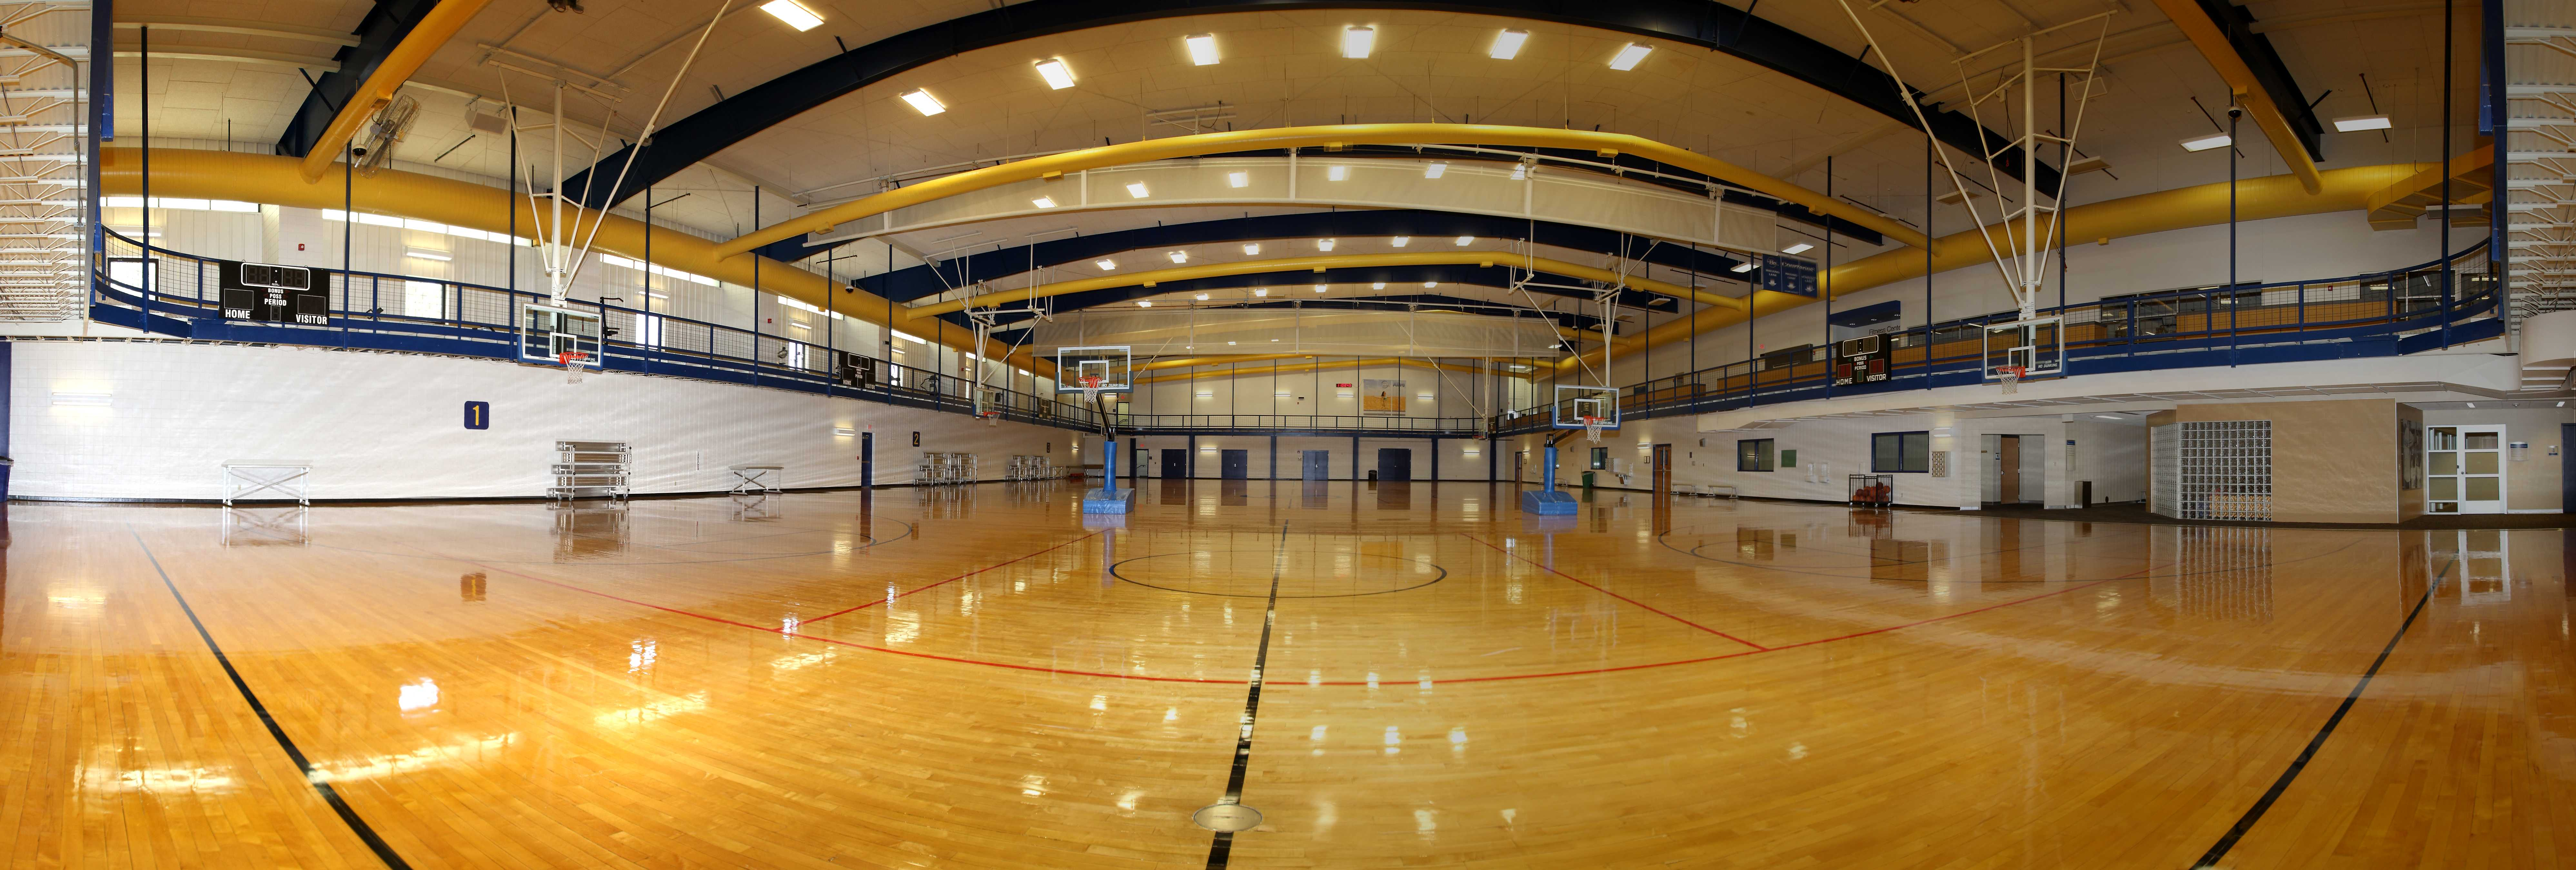 Basketball courts derby recreation commission ks for Racquetball court construction cost